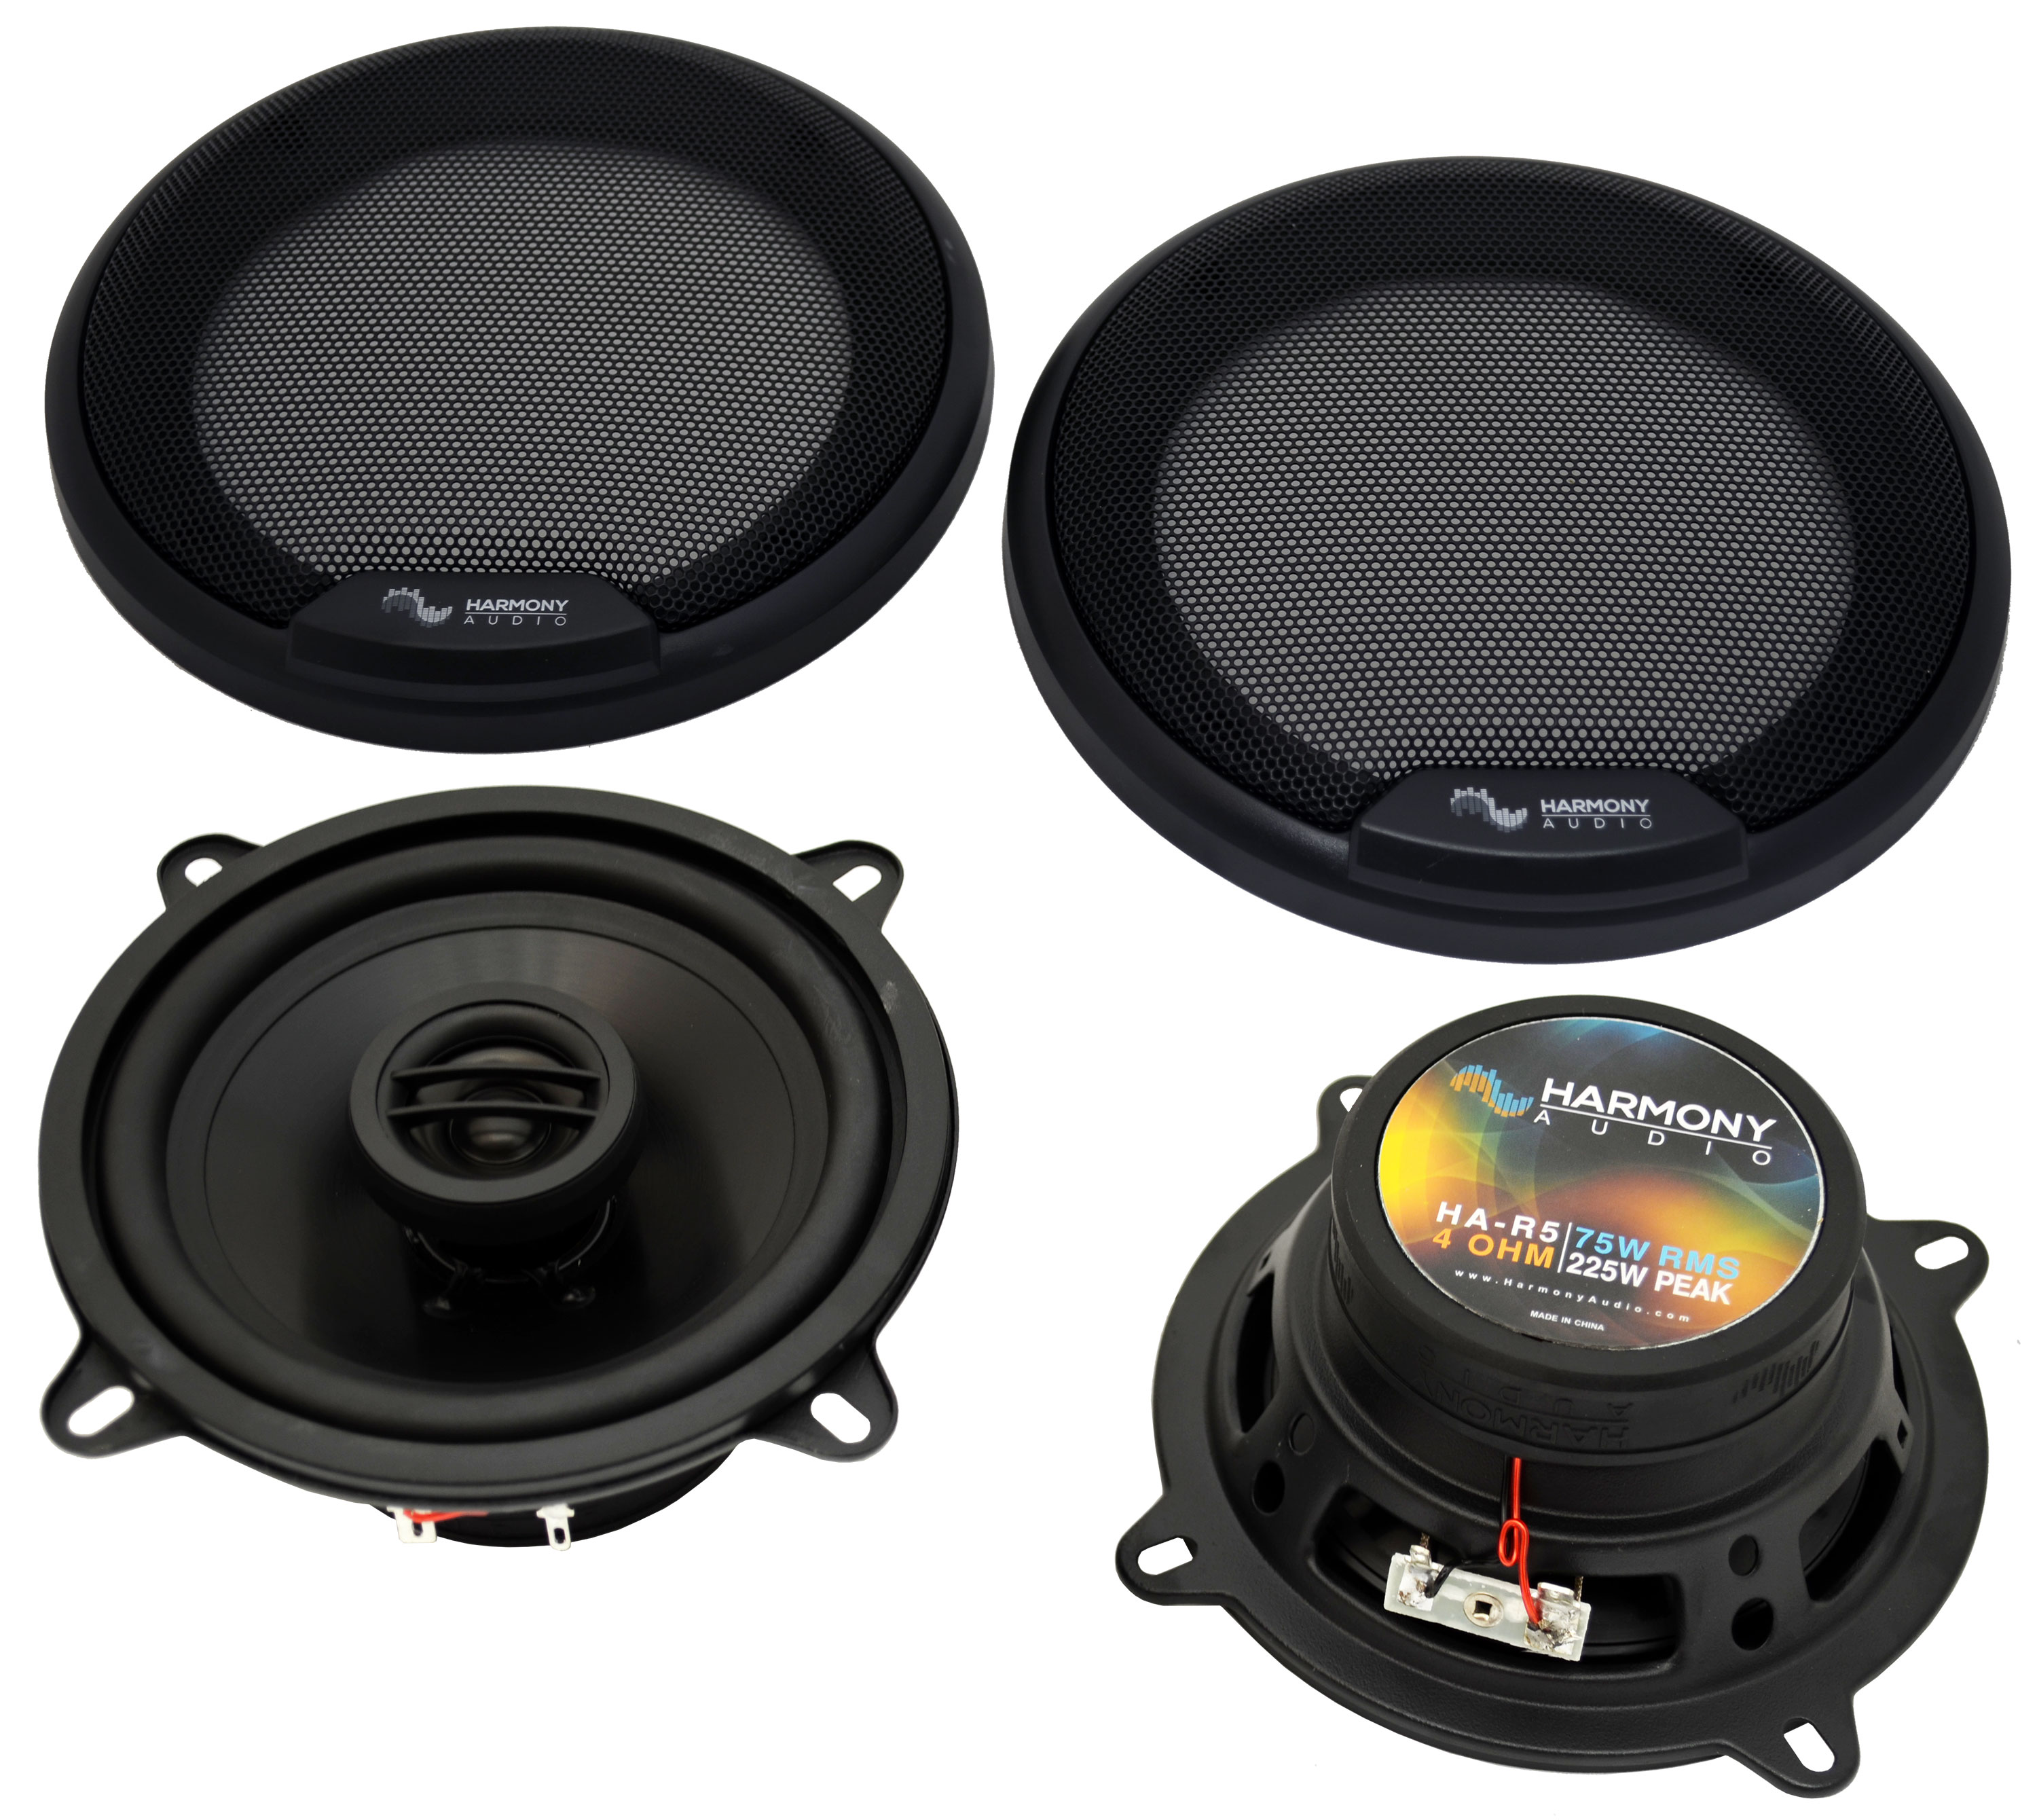 Harmony Audio Compatible With 2002-05 Hyundai Accent HA-R5 New Rear Deck Replacement Speaker Pair